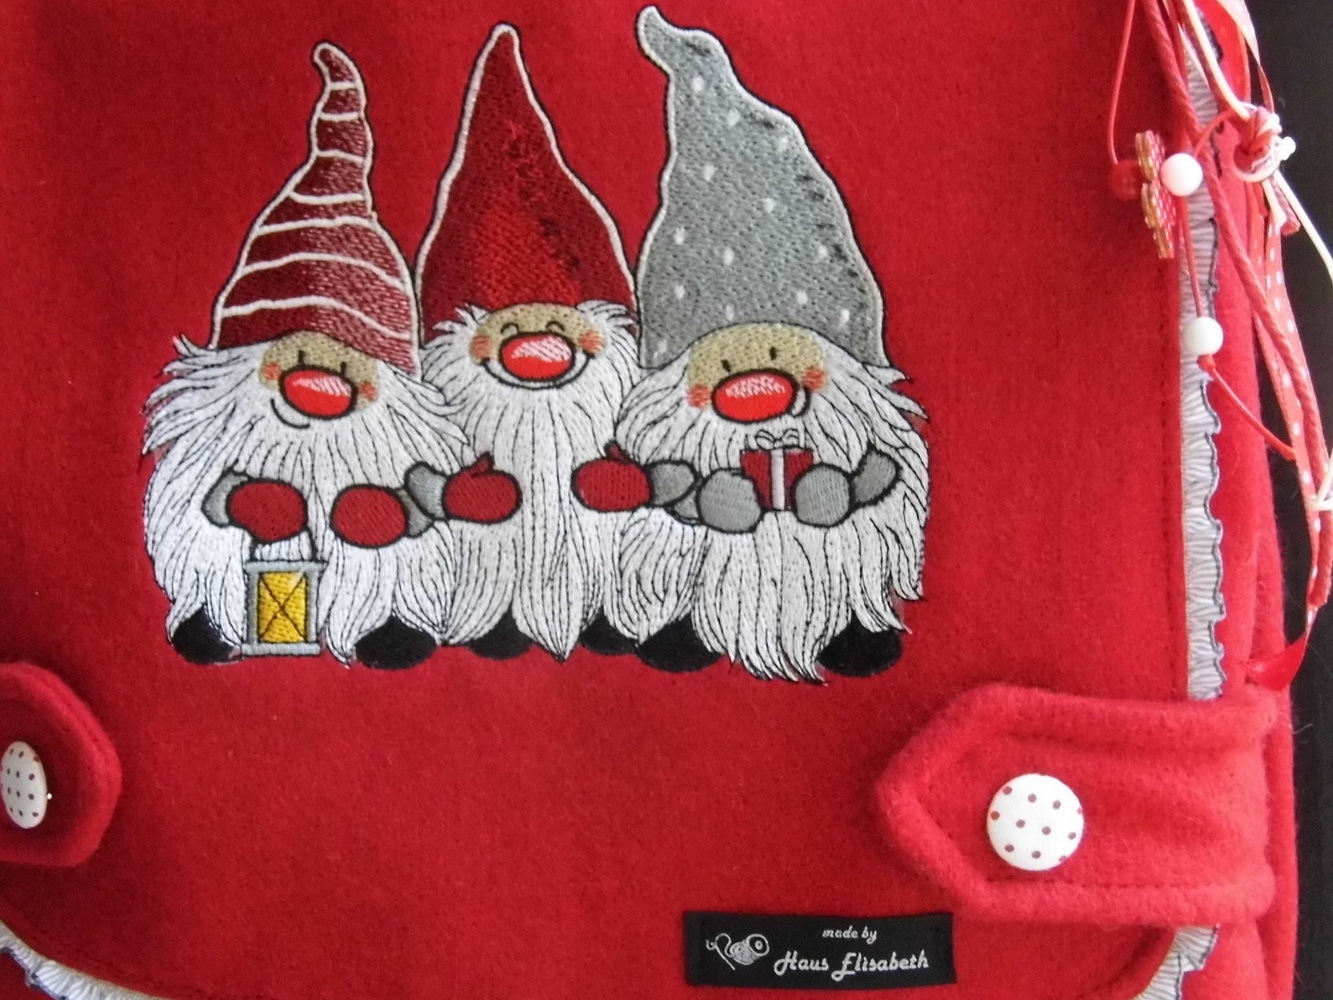 Dwarves embroidery design  on bag